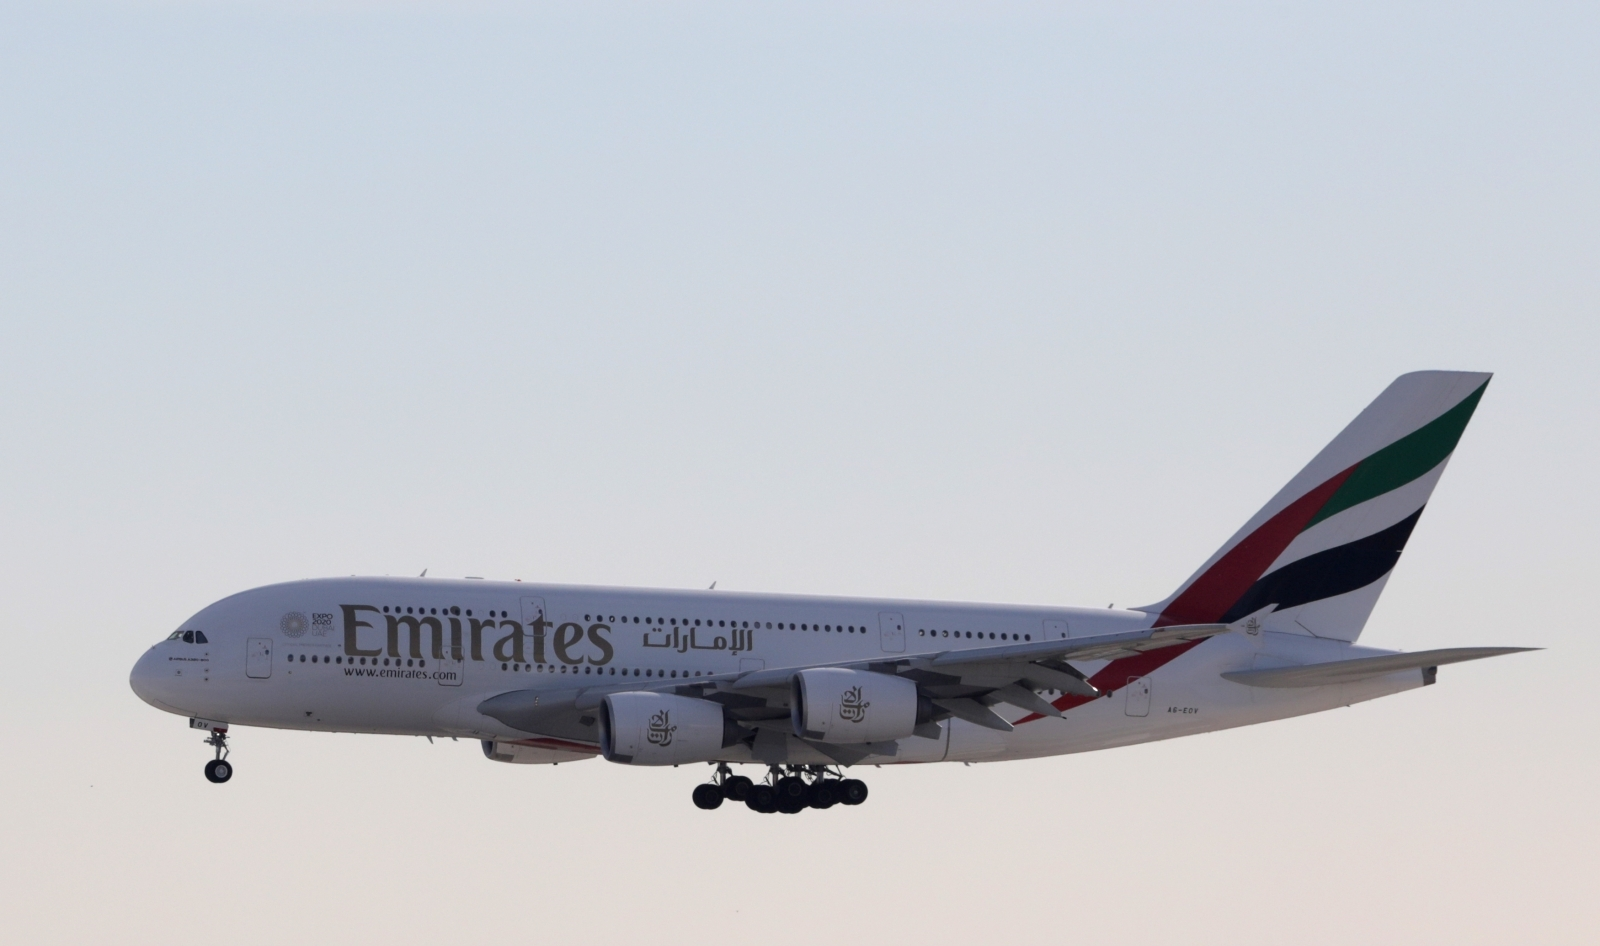 Woman suffering menstrual pain claims Emirates Airlines booted her off her flight